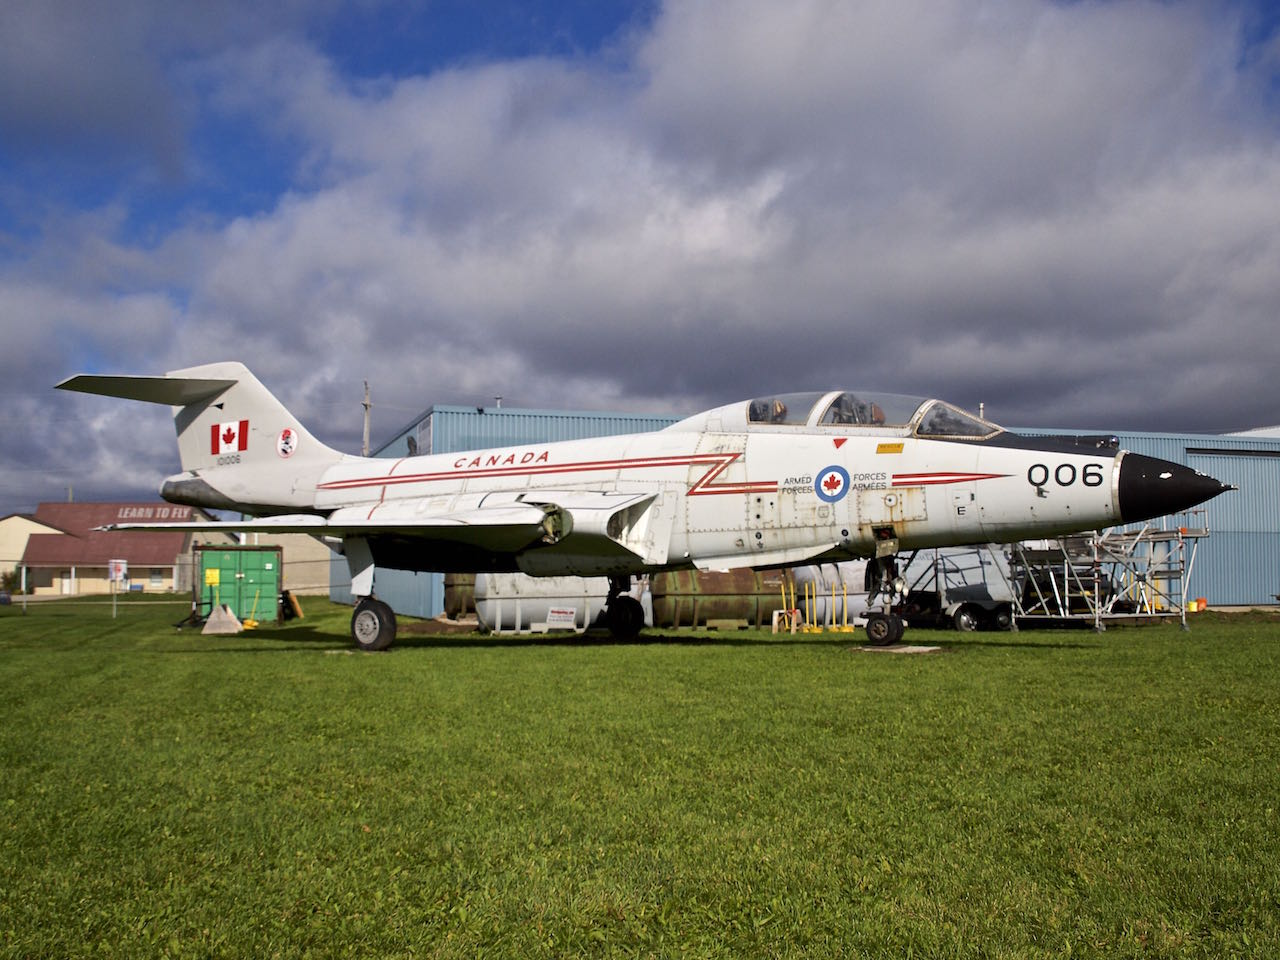 CF-101F 101006 made the world's last Voodoo flight on 09 April 1987, as it made a delivery flight from CFB North Bay to CFB Greenwood via CFB Bagotville and CFB Chatham for eventual display at CFB Cornwallis, Nova Scotia.In October 2013, because of corrosion and security concerns, the museum donated 006 to the Jet Aircraft Museum in London, Ontario, where it is presently undergoing refurbishment.